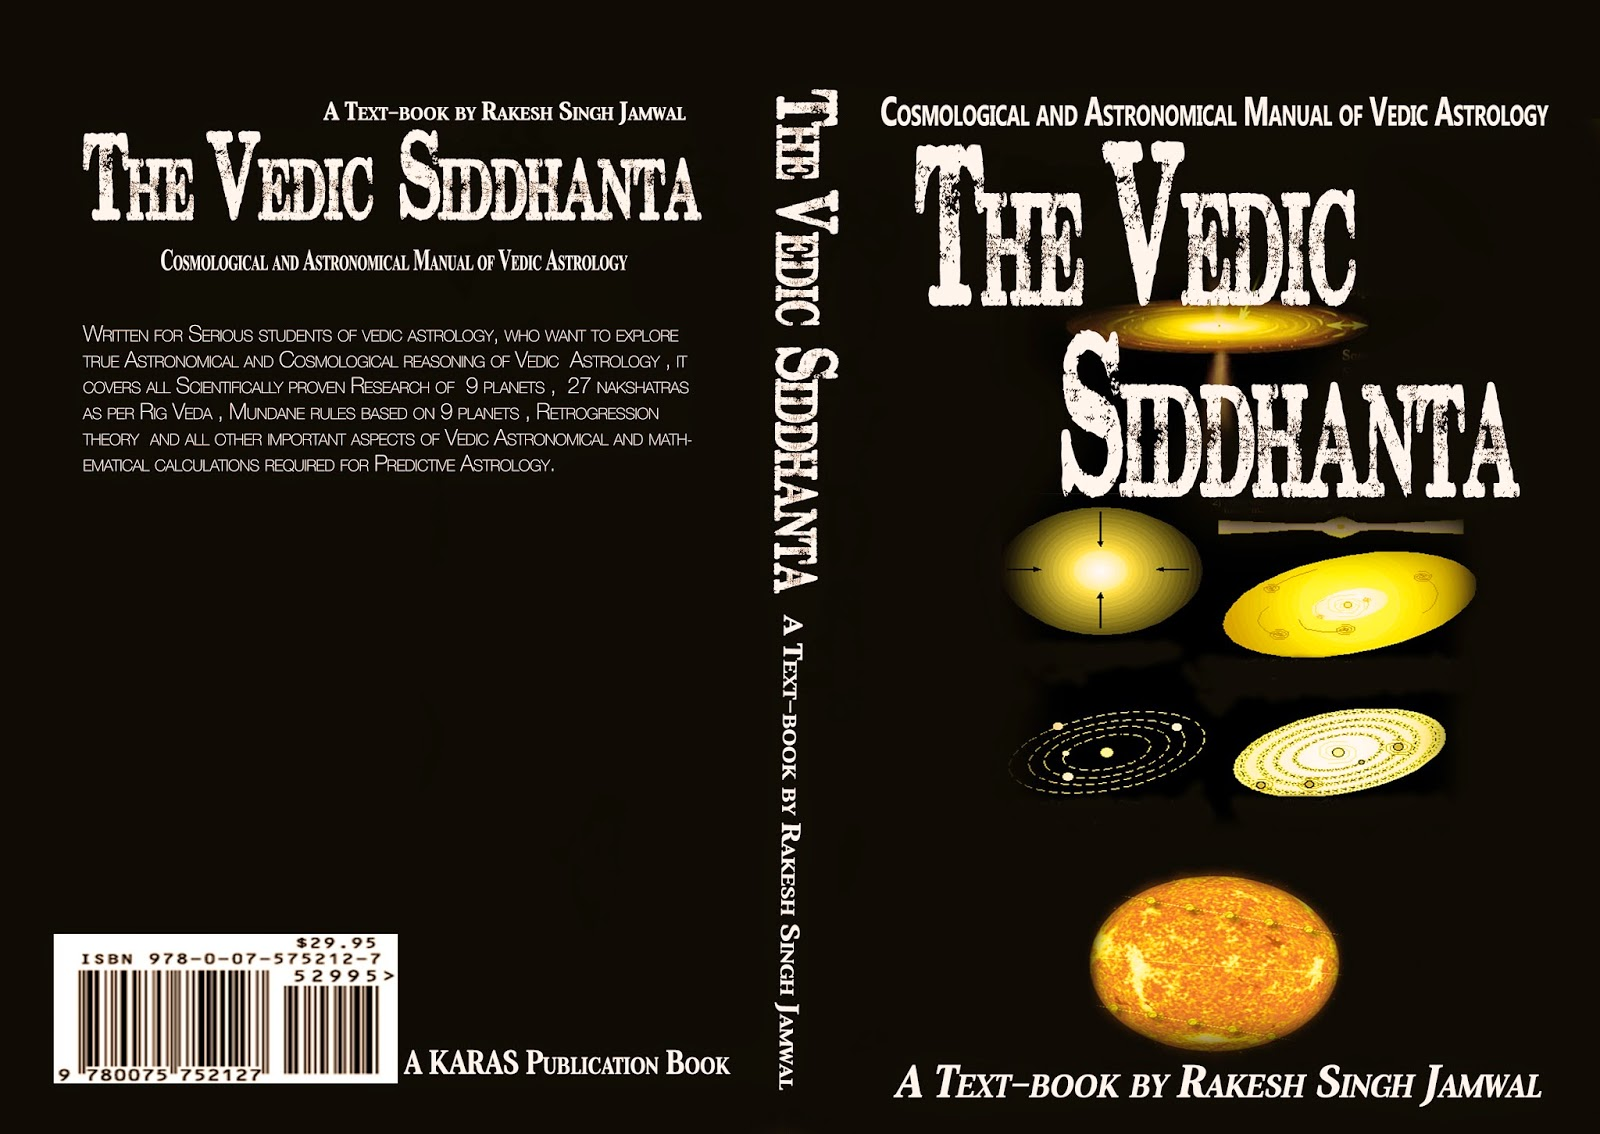 The vedic siddhanta written for serious students of vedic astrology who want to explore true astronomical and cosmological reasoning of vedic astrology it will covers all nvjuhfo Choice Image